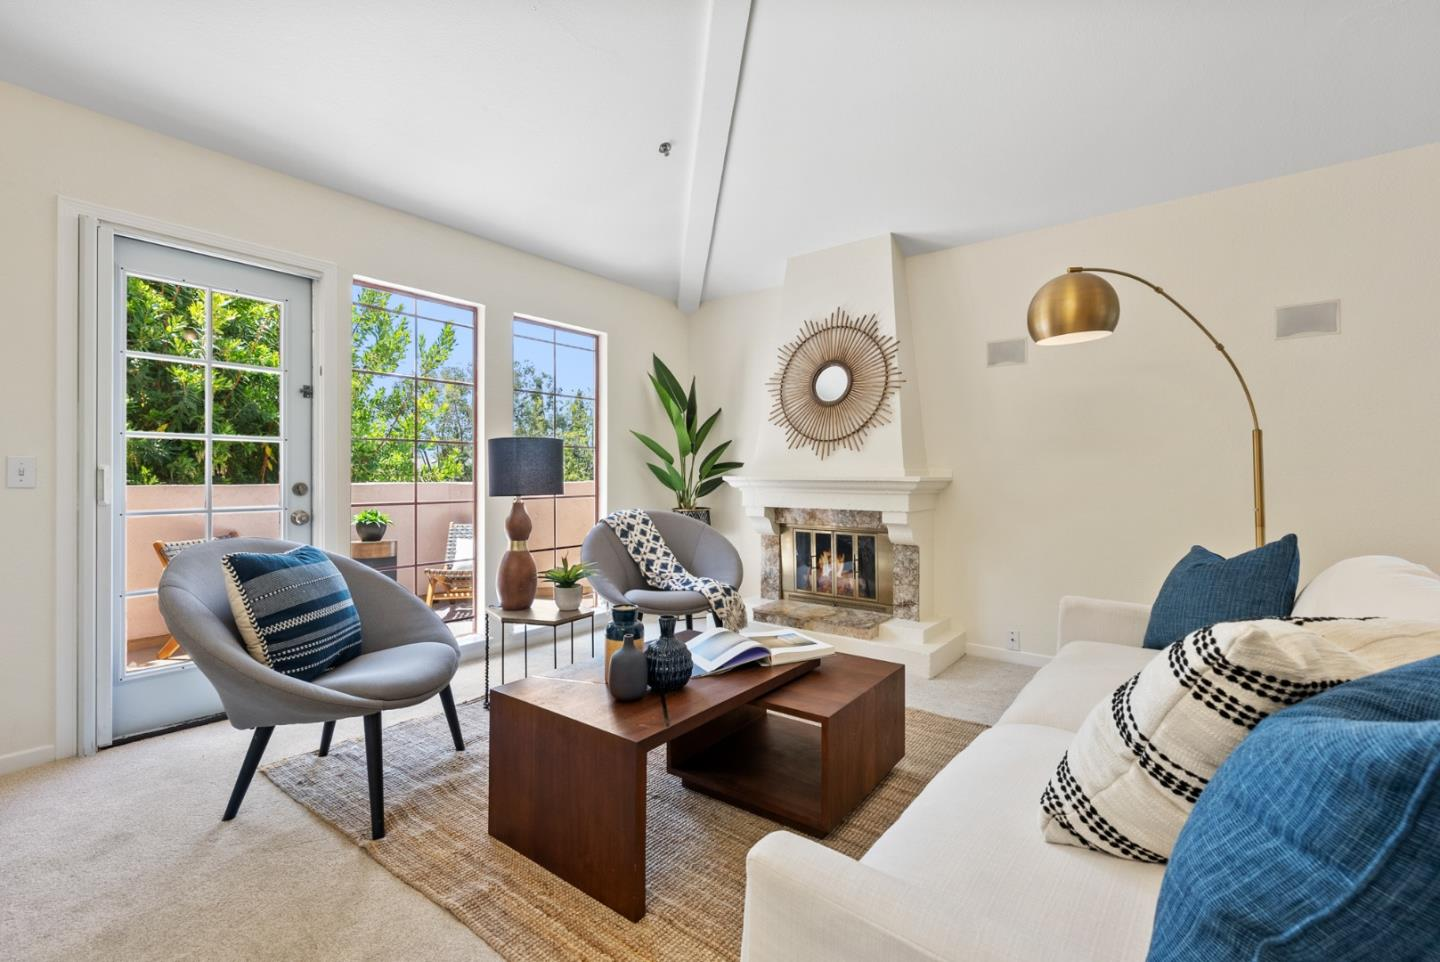 Beautifully remodeled end unit in the best location in the Cupertino Waterfall Community. This 2B/2B 1154 sf north east facing residence offers conveniences of modern living. Spacious great rm w/ cathedral ceilings, fireplace & new patio door to balcony. Stunning remodeled kitchen w/ granite countertops, tile backsplash, custom cabinets & new s/s appliances. Master suite w/ spacious walk-in closet, custom cabinetry & remodeled bath w/ shower. 2nd bedroom w/ 2 closets & 2nd bath access. Other amenities: fresh paint, designer carpet, shutters, custom cabinetry, In-house laundry & more. 2 car tandem garage w/ room for work/storage. Well-maintained community w/ water fountains, pool/spa. Prime Cupertino location; including shopping, dining & recreational facilities, such as Cup Library, Wilson Park, Flint Center & Community Center. Walking distance to schools & Apple buildings, minutes from Google, Facebook, Tesla w/ EZ access to 85/280. Top Cup schools: Eaton, Lawson, Cupertino High.